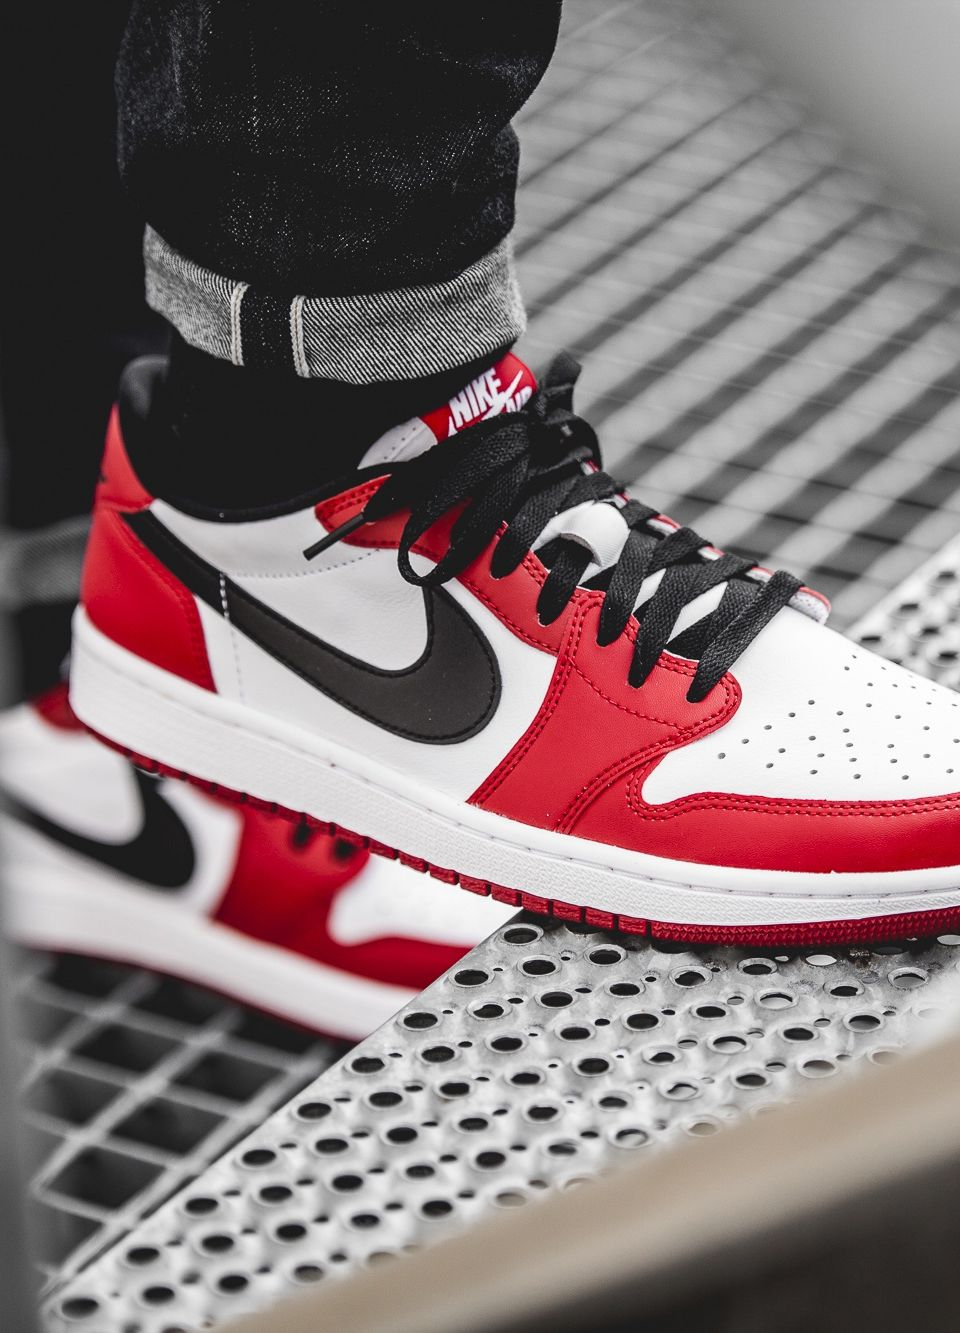 air jordan 1 chicago low